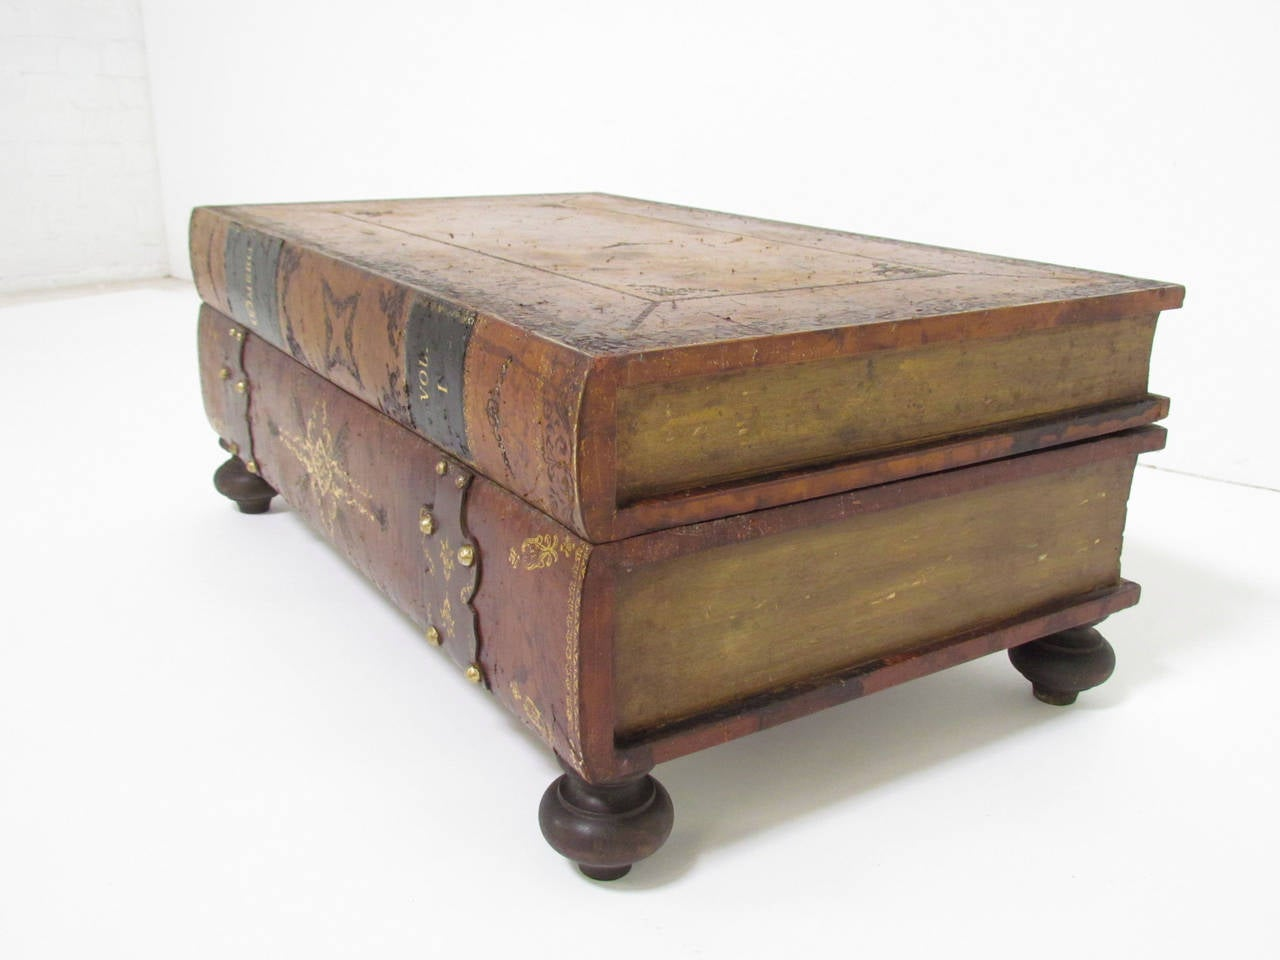 Italian Leather Book Form Table in manner of Maitland - Smith 2